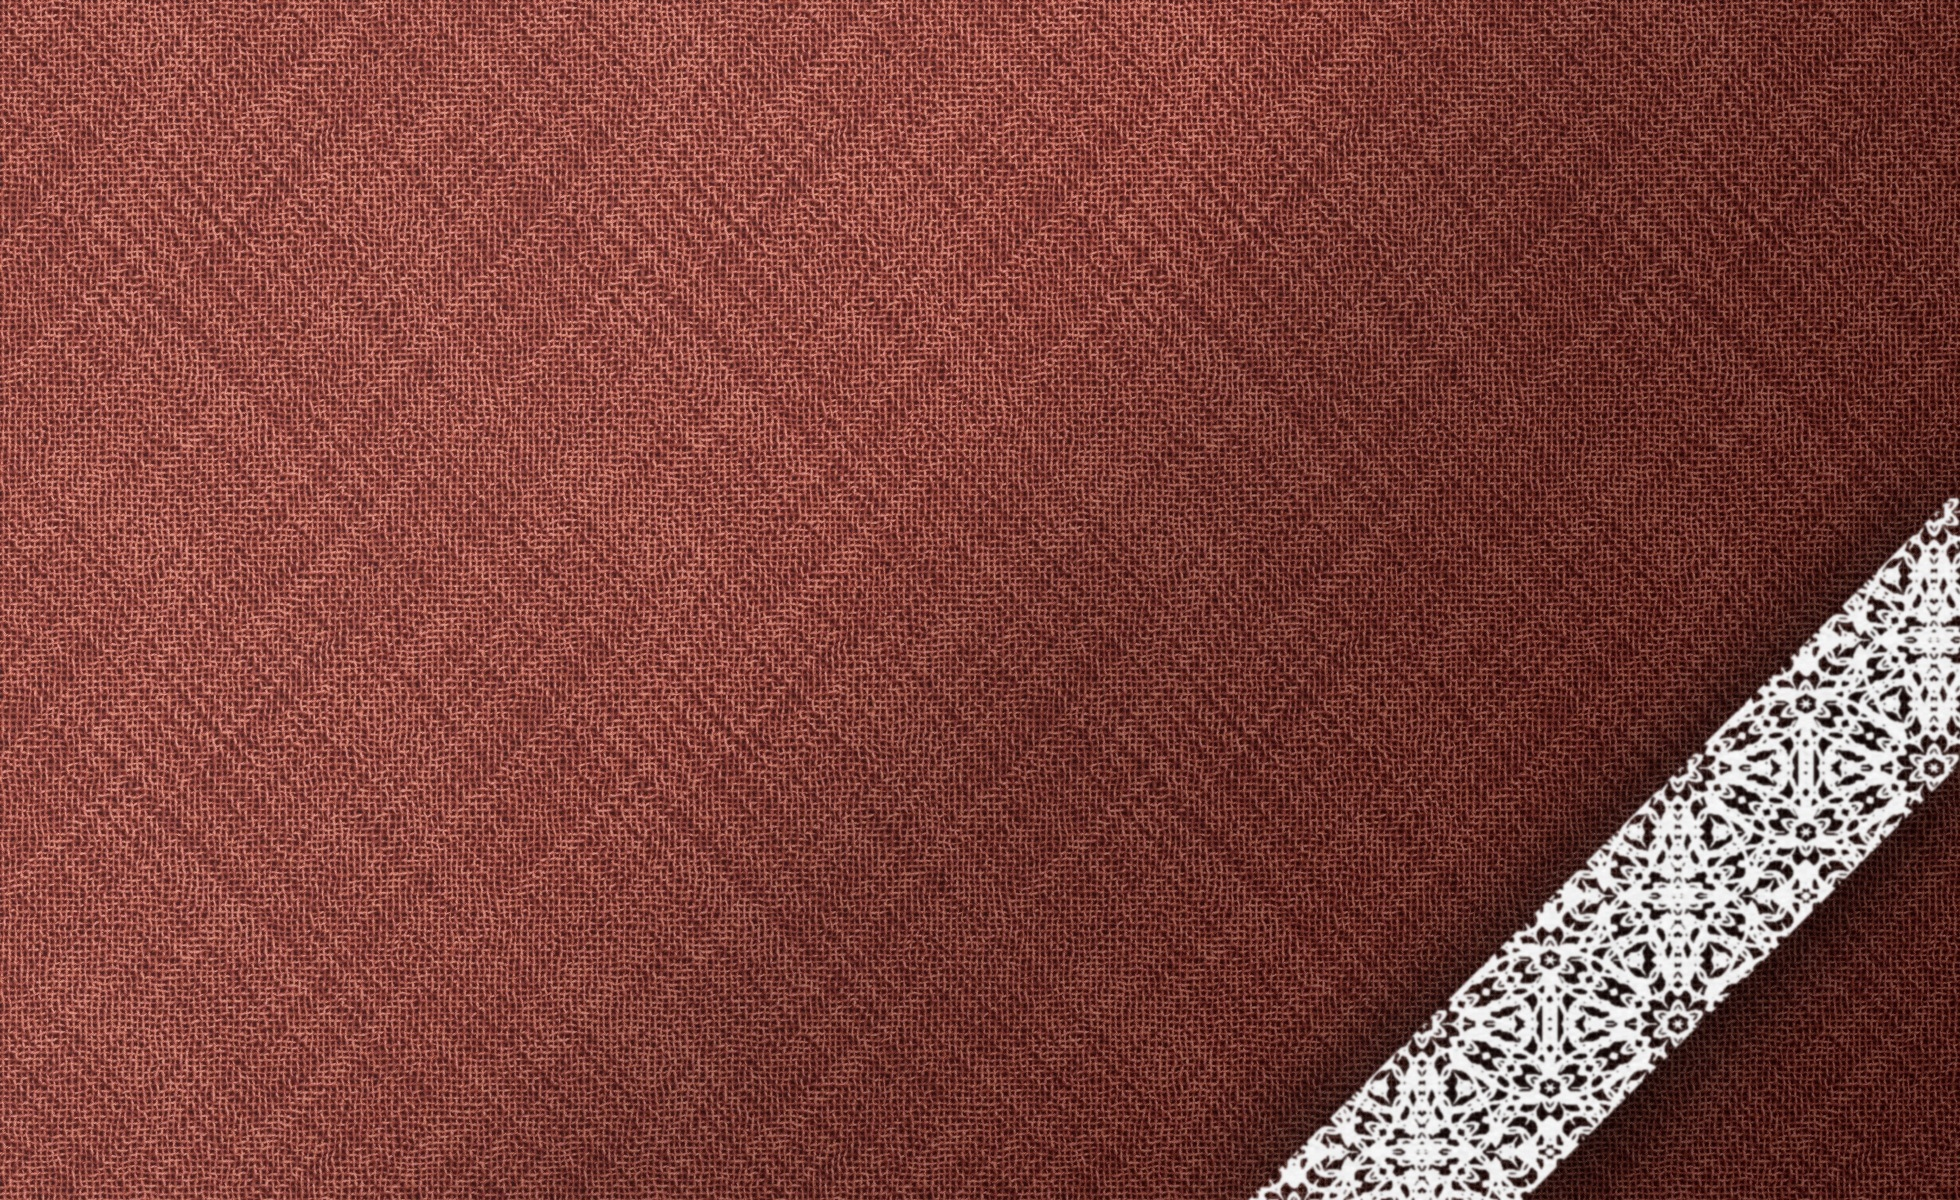 cloth burgundy brown white lace wallpaper   ForWallpapercom 1960x1200